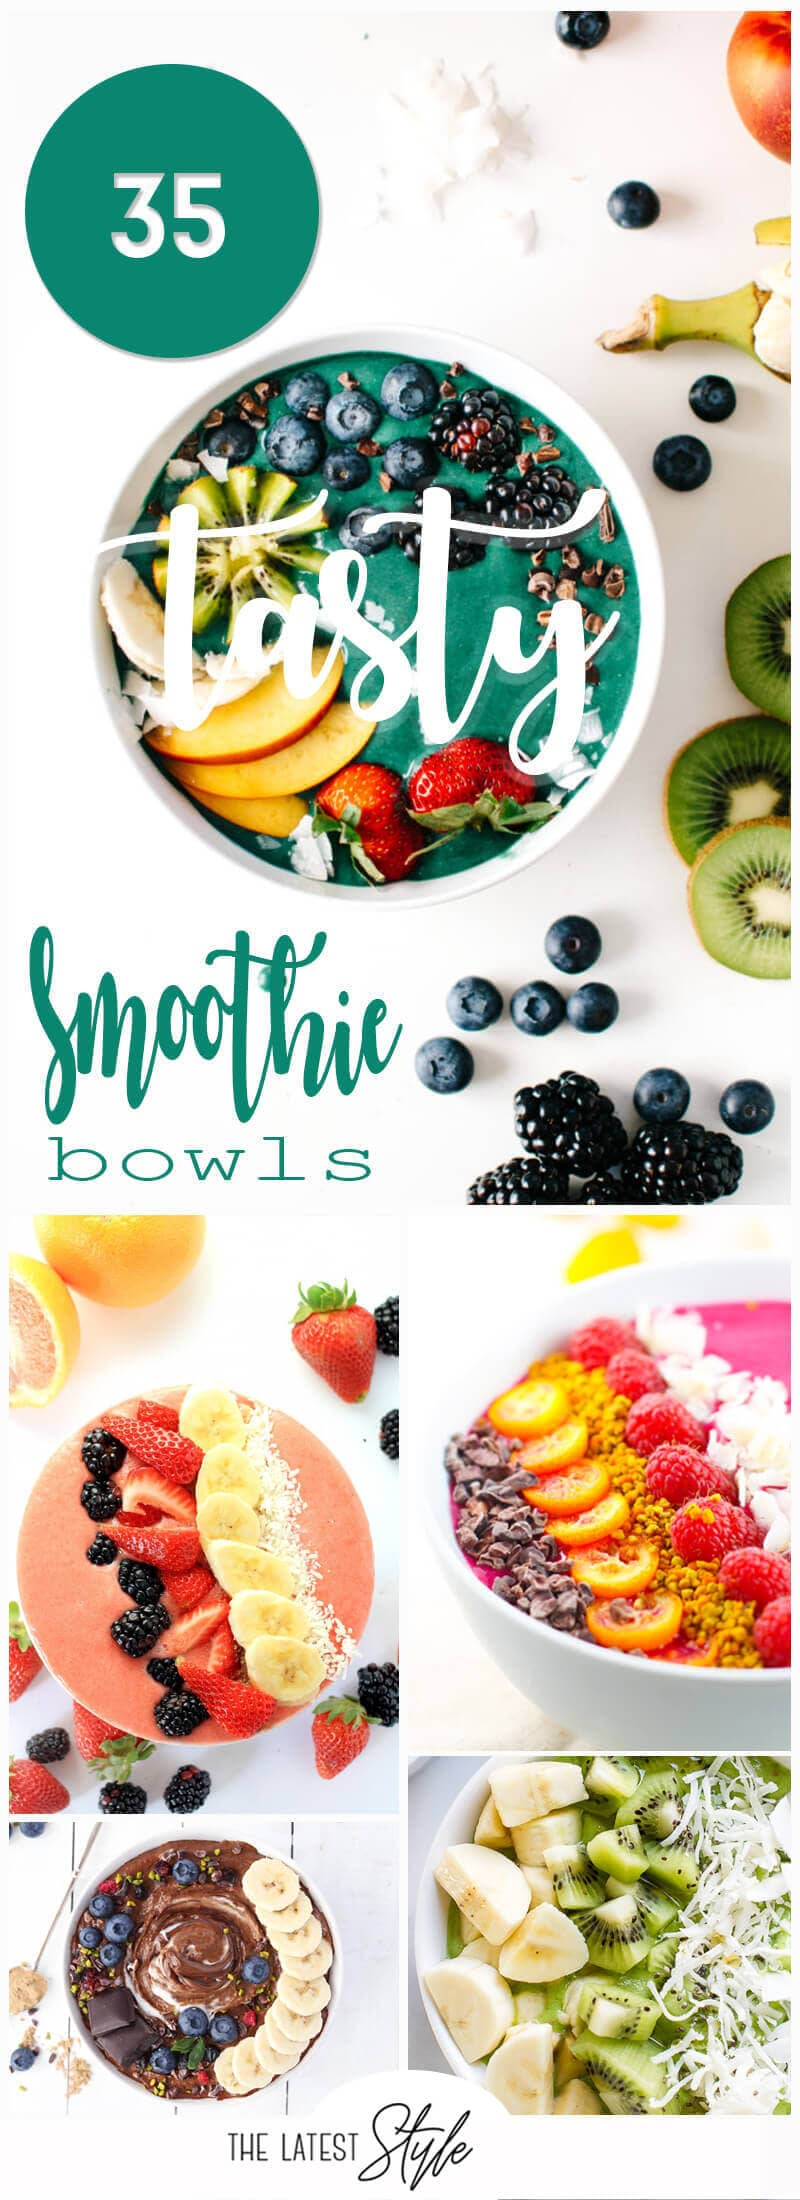 35 Tasty Smoothie Bowl Recipes that You can Easily Make at Home